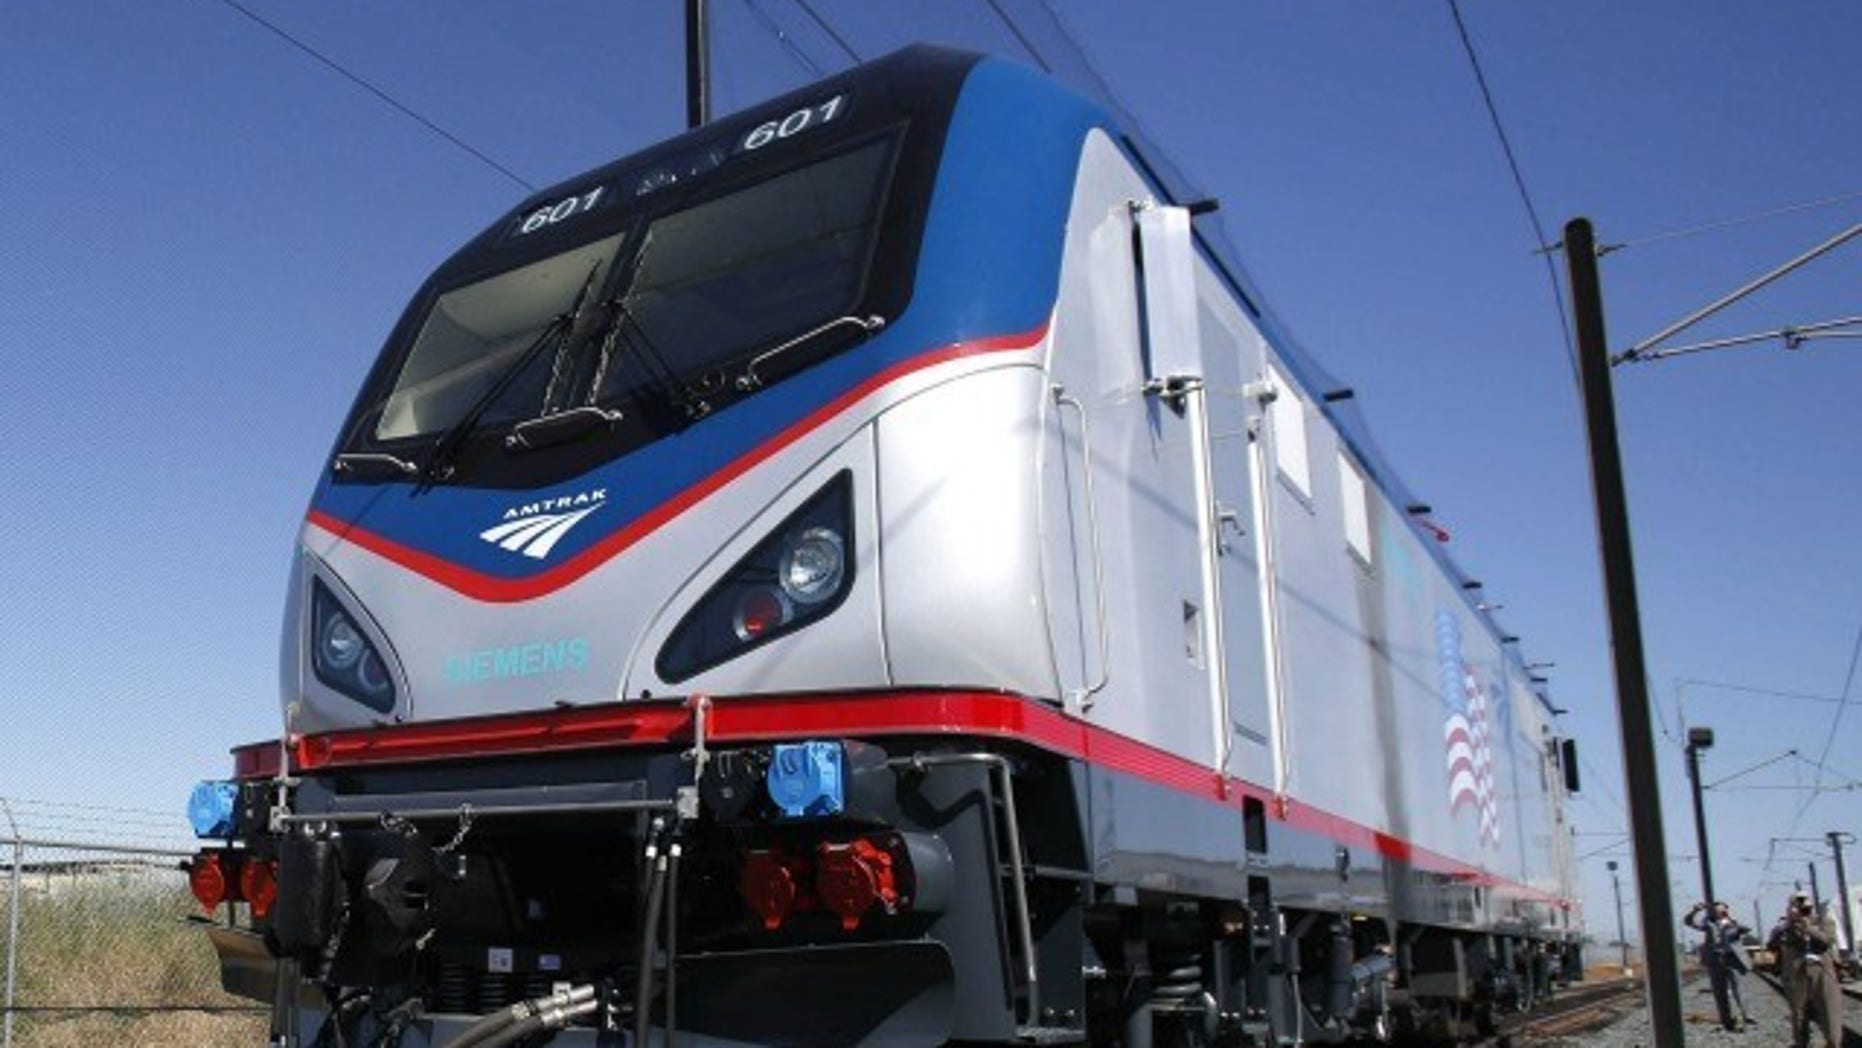 Amtrak says they are on track for the Dec. 31 deadline other rail companies are lagging behind.